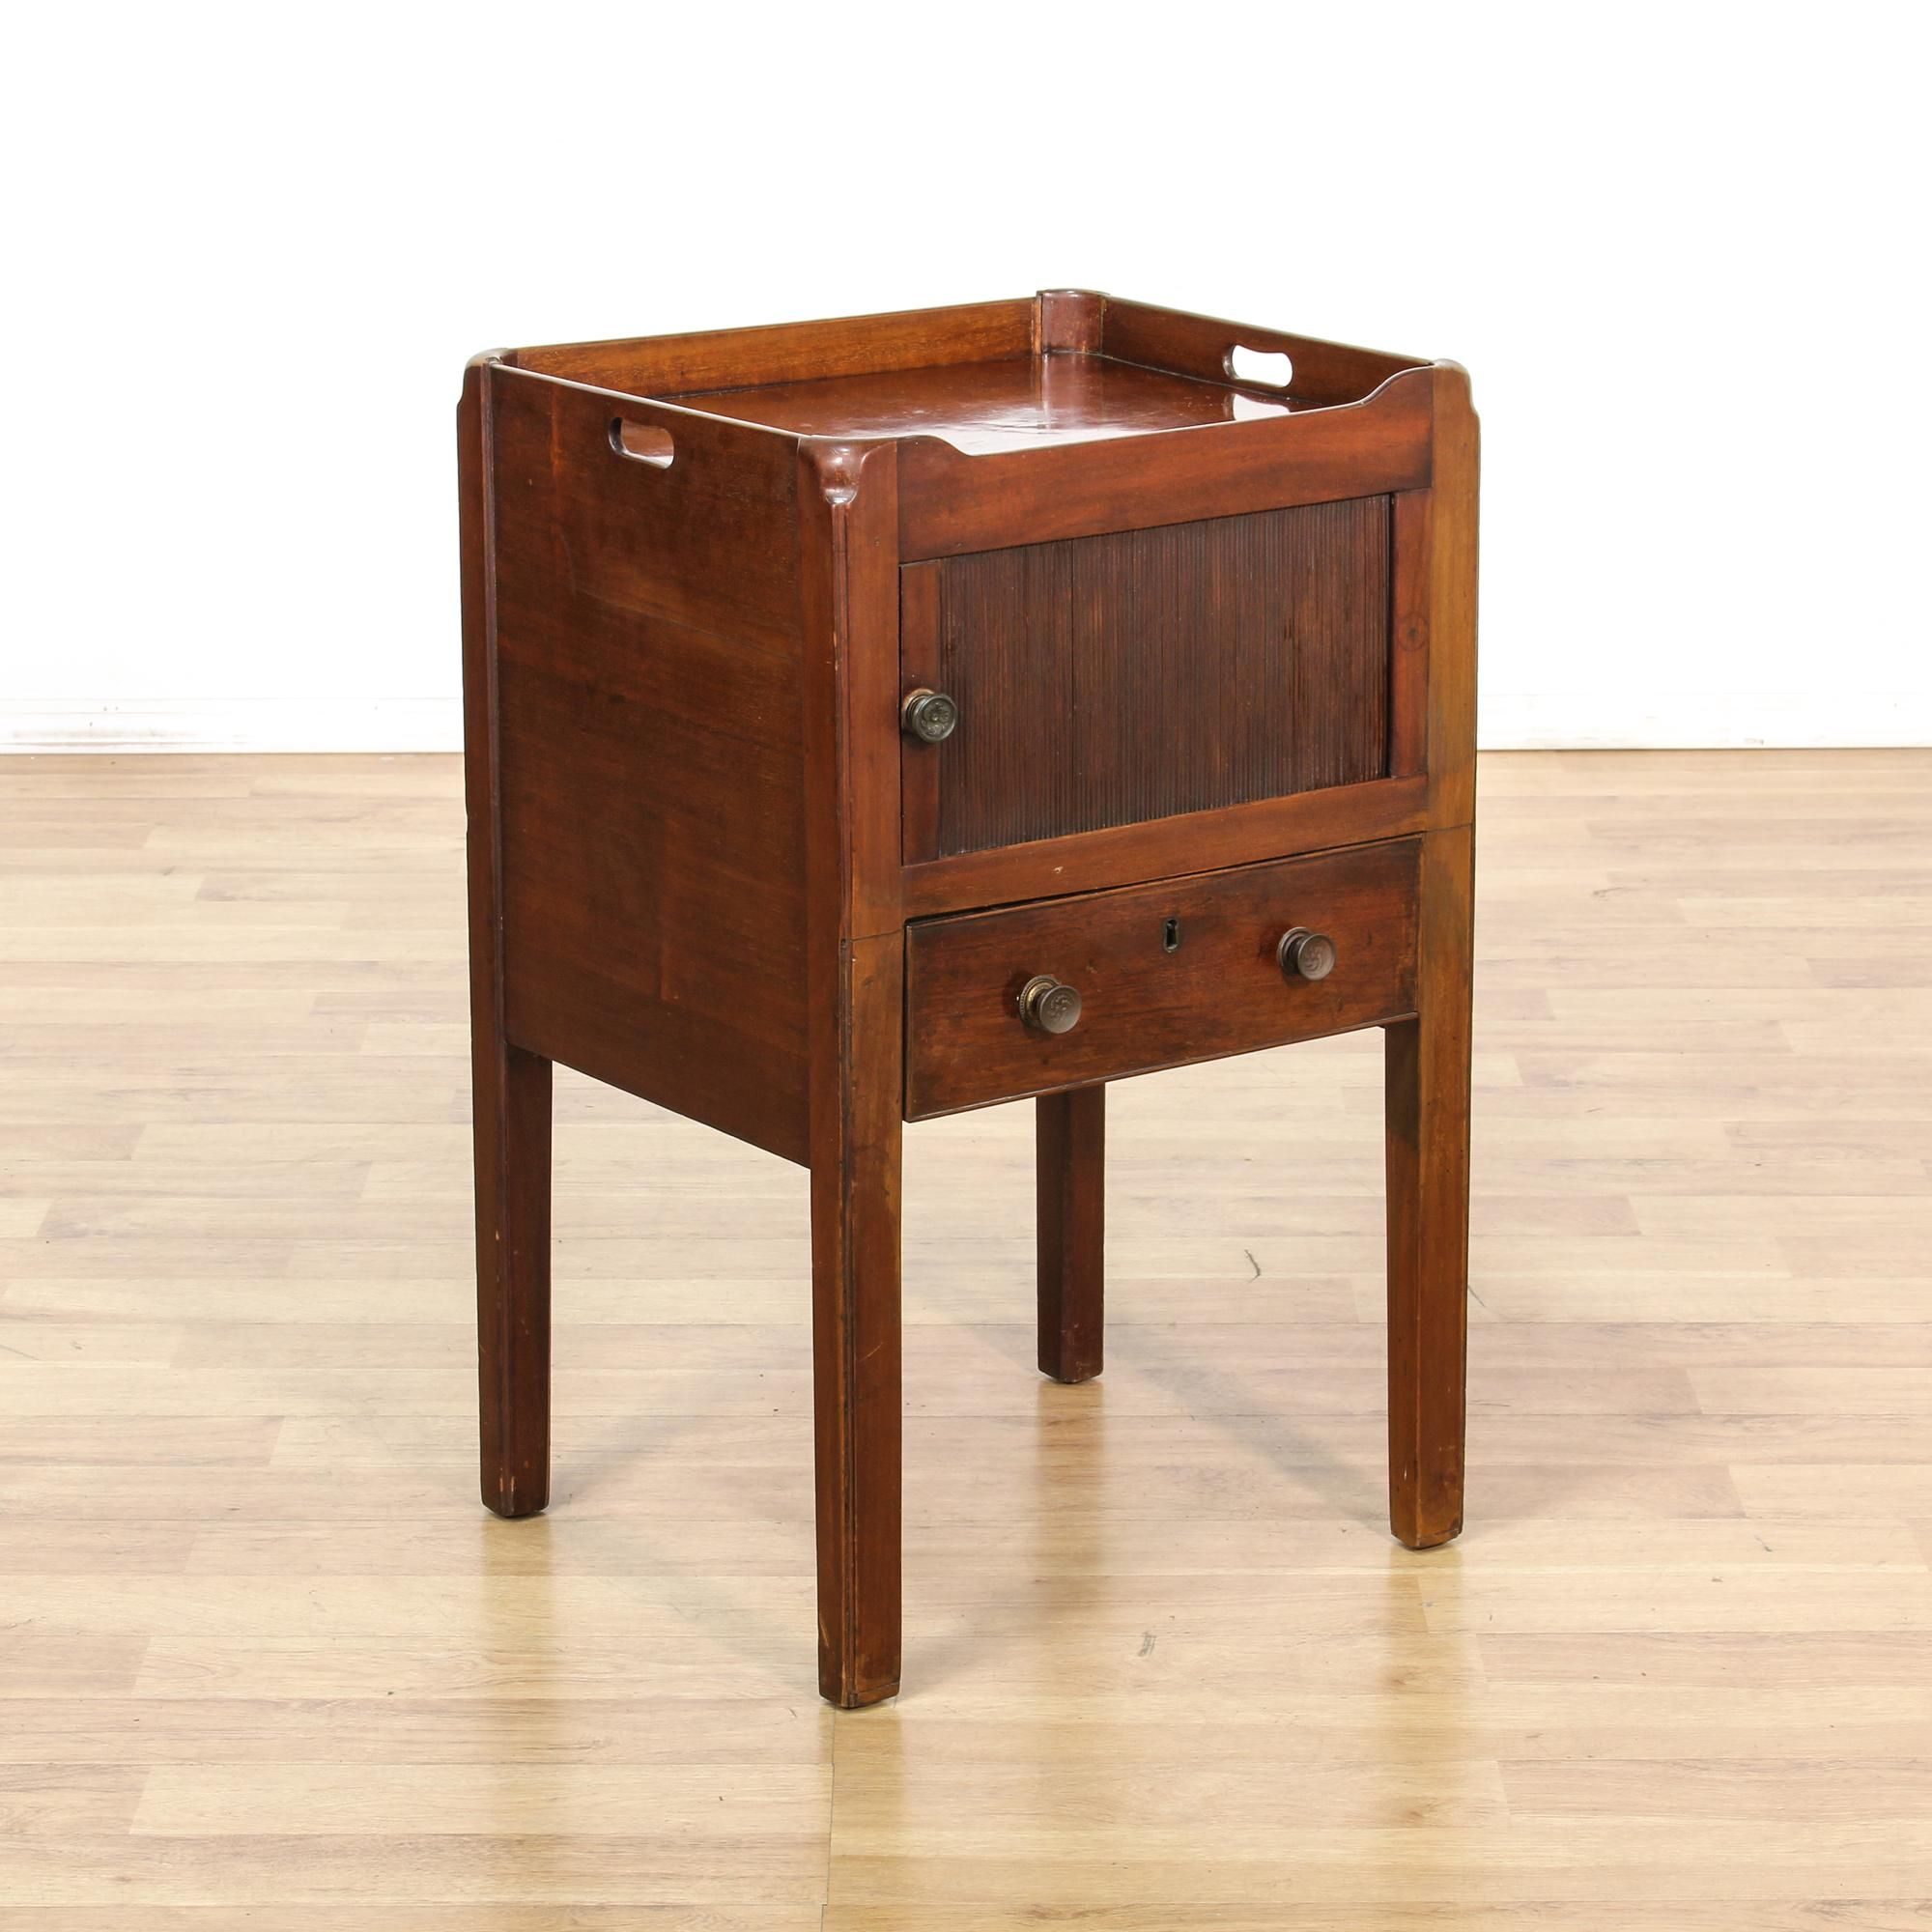 This antique Georgian style commode is featured in a solid wood with